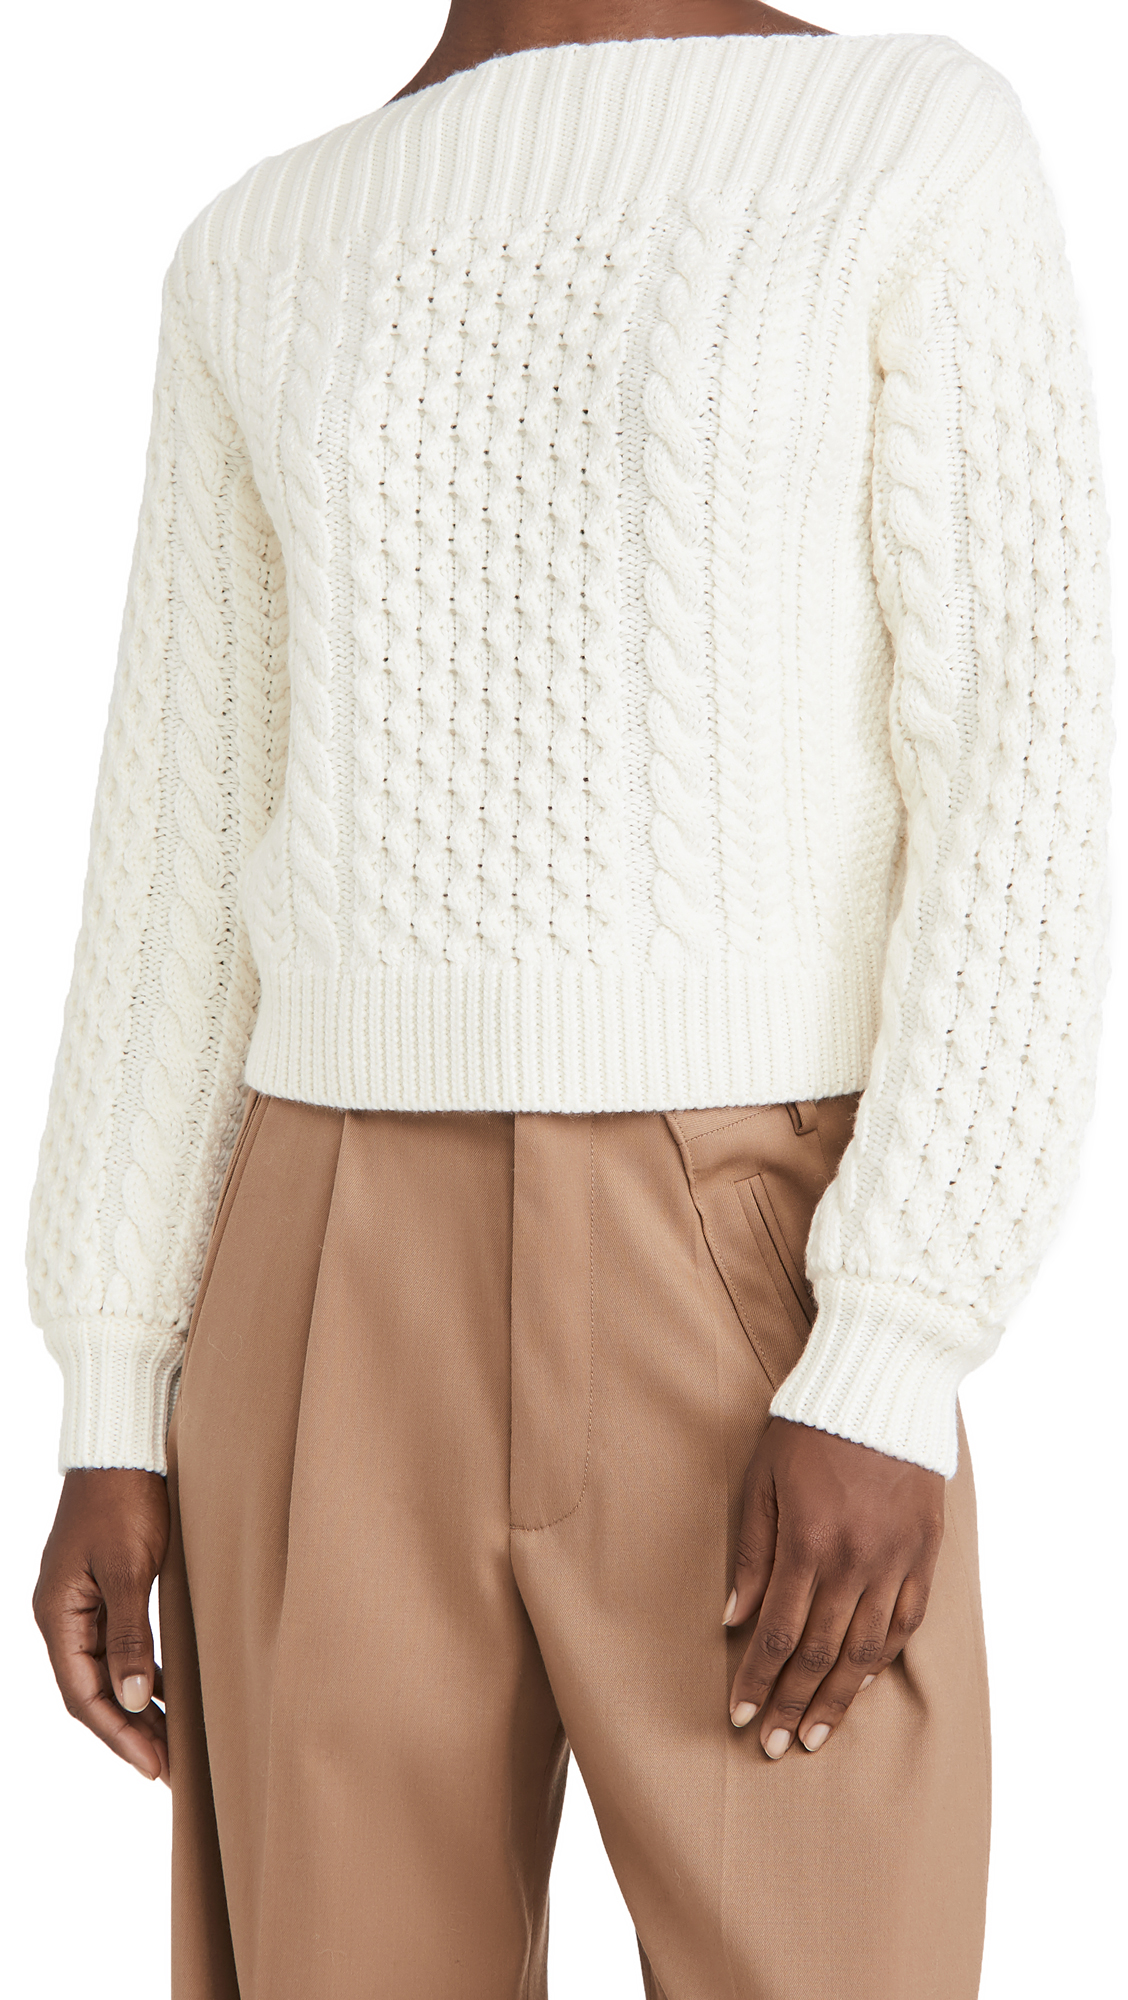 Proenza Schouler White Label Chunky Cable Knit Sweater